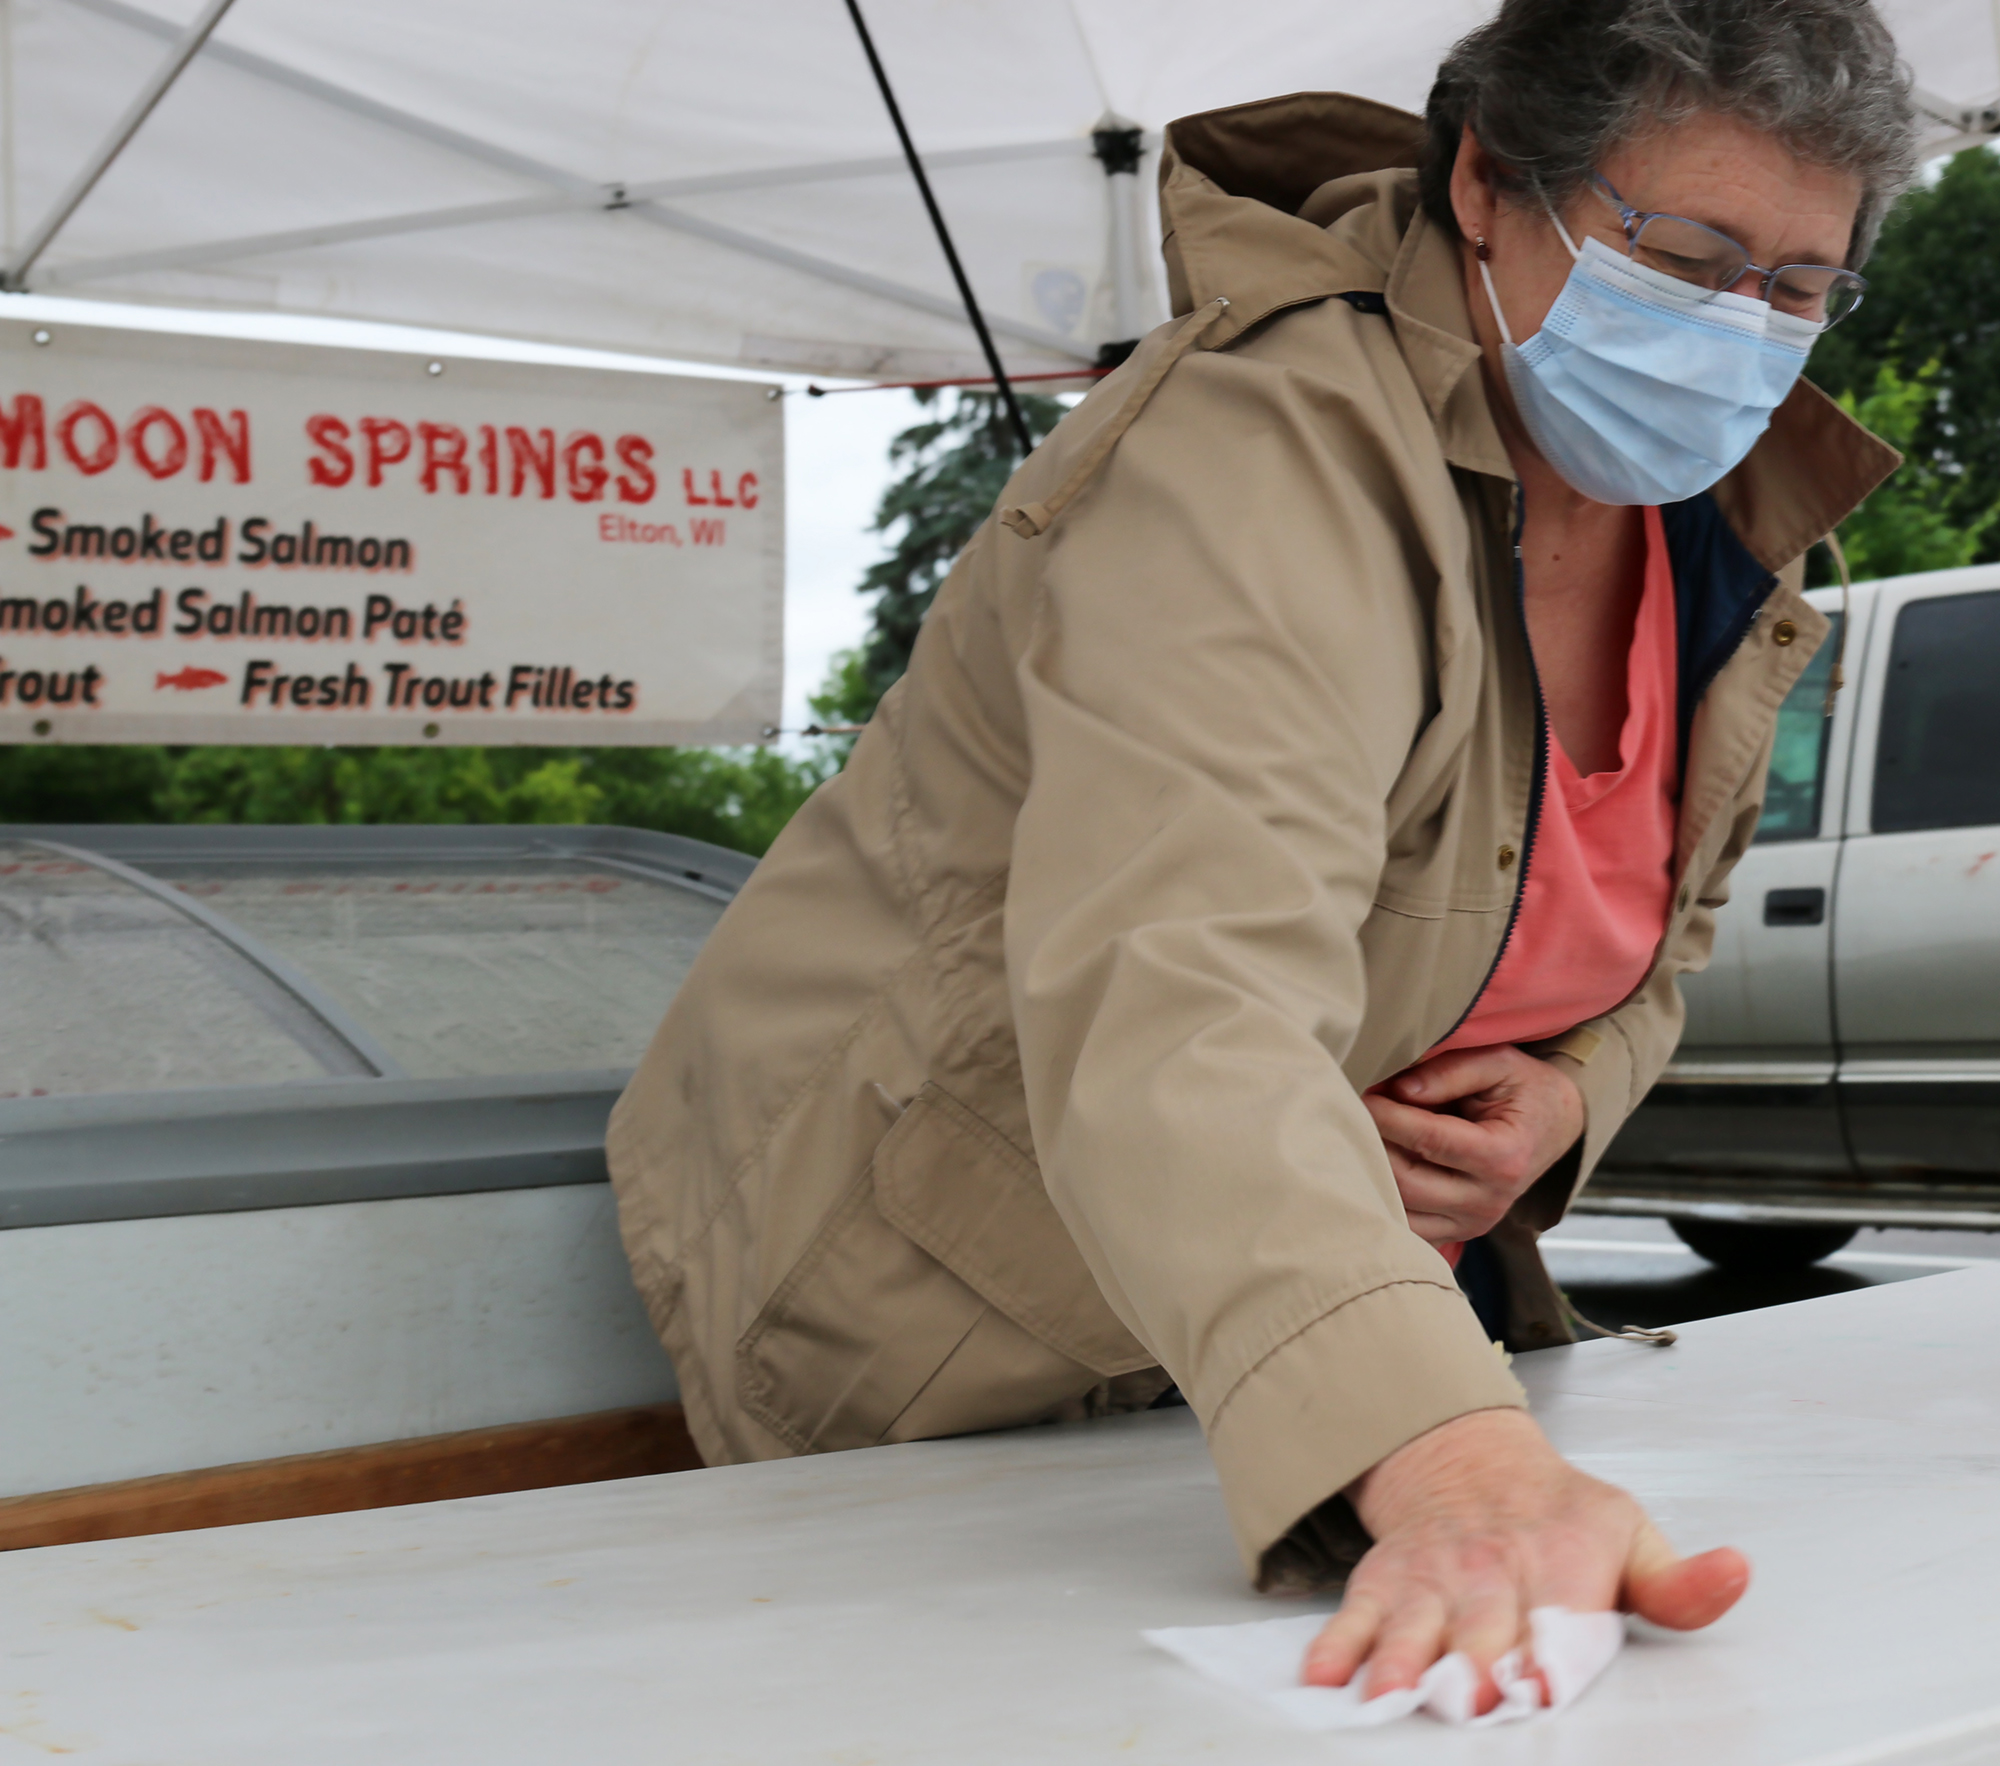 Bobbie Schneider of Silver Moon Springs wipes down her table after each customer at the first FRESH Project Farmers Market on Saturday. Most vendors wore masks and wiped down surfaces. Social distancing was not too much of an issue, given the repeated rain showers that limited the crowds.Carol Ryczek   NEW Media